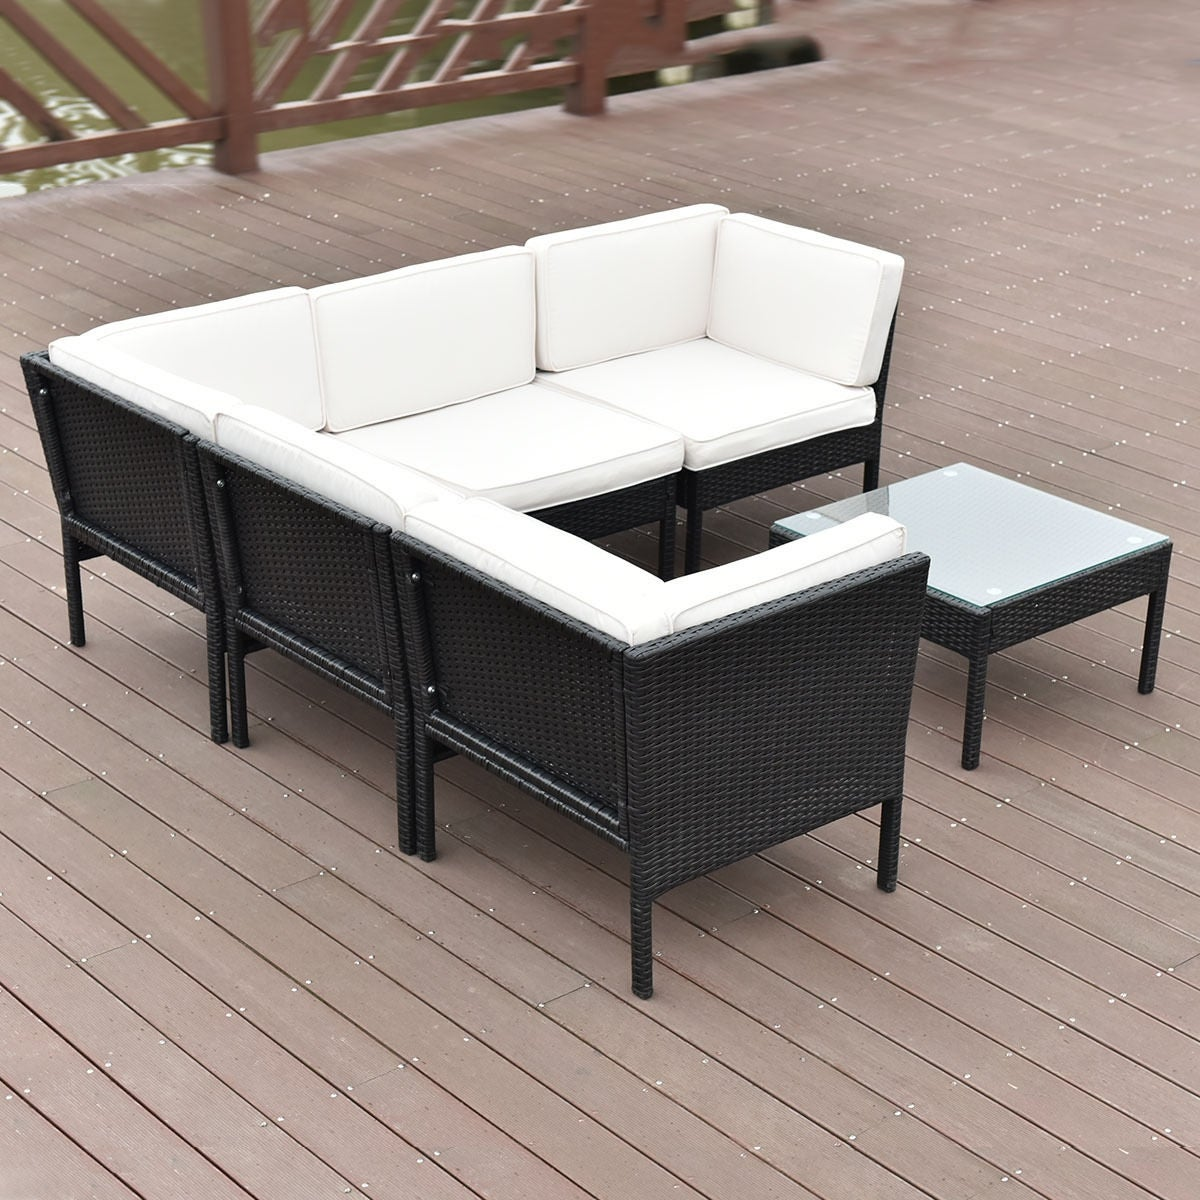 Shop Costway 6 PCS Rattan Wicker Patio Furniture Set Steel Frame ...